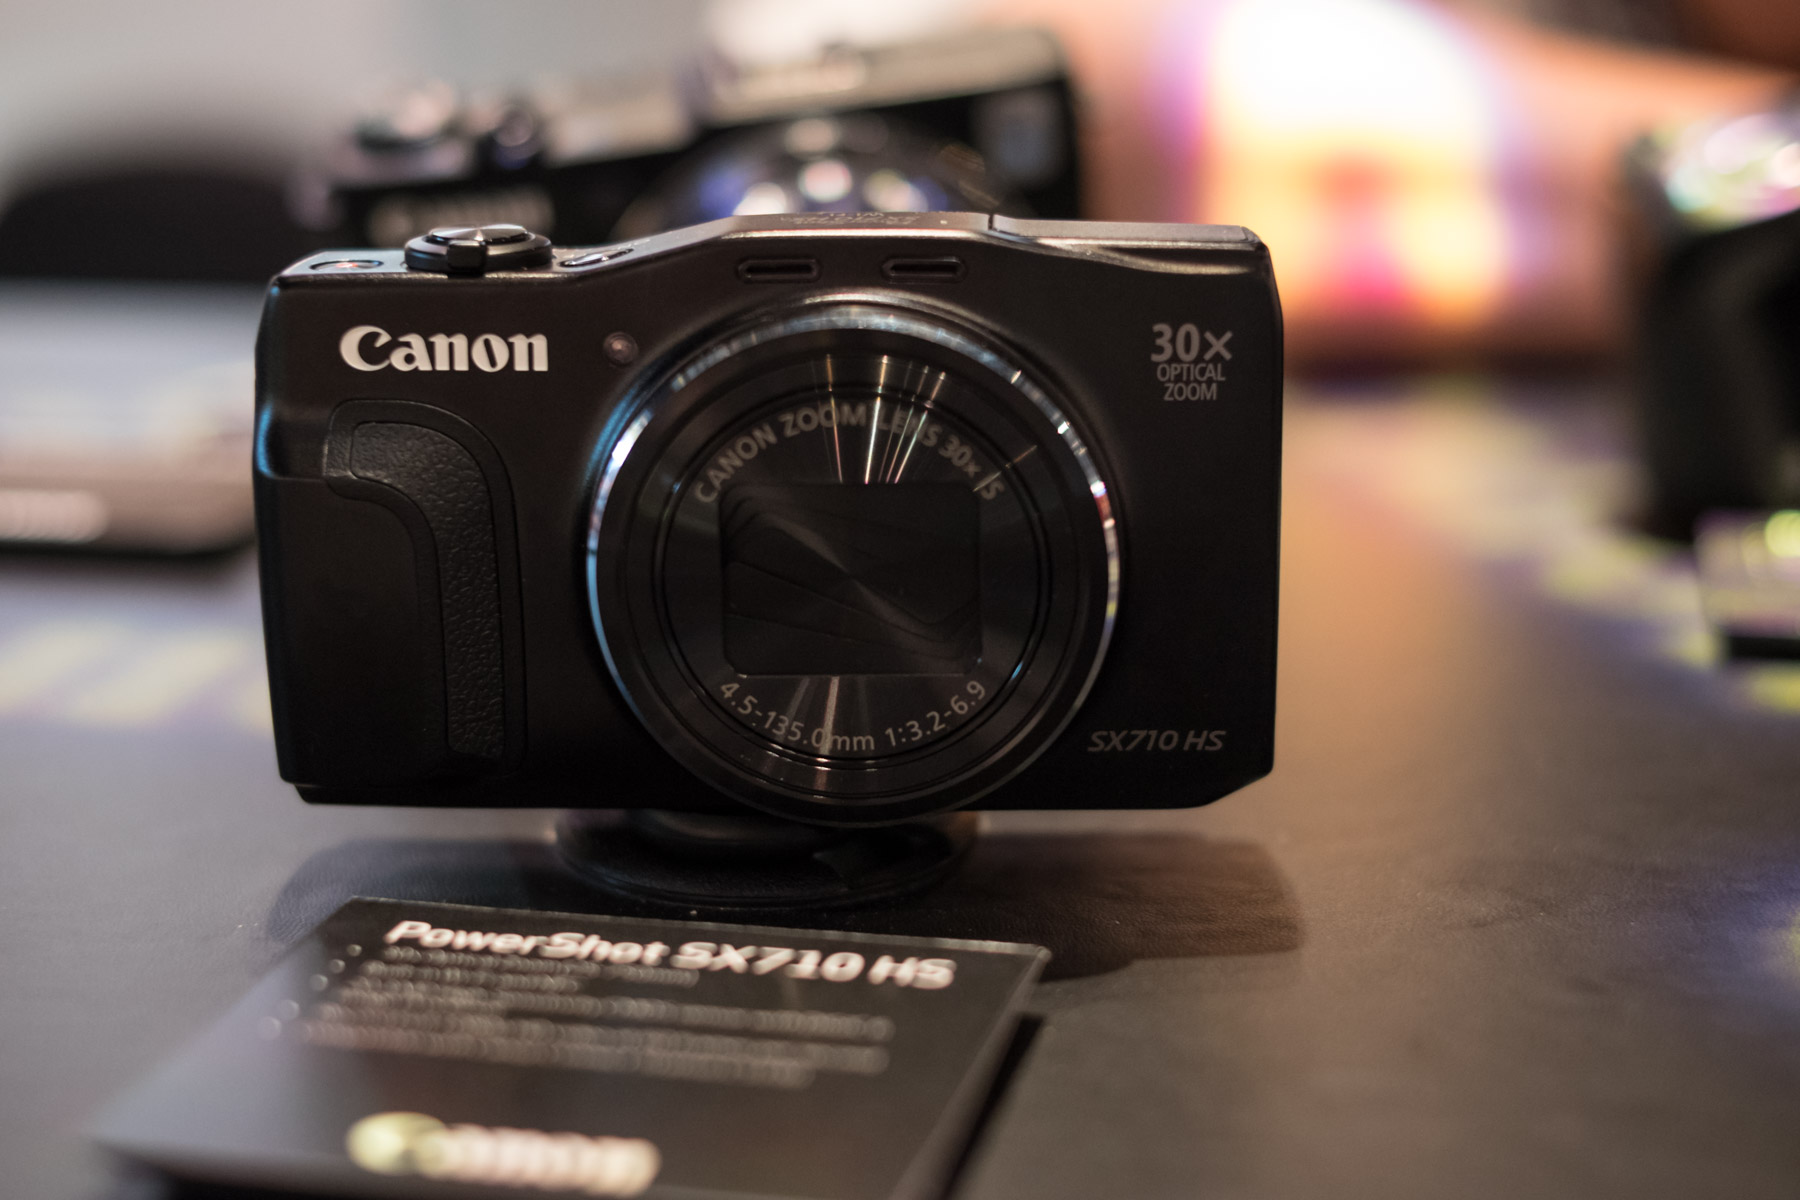 Demand for high-end compacts and superzooms bucks camera sales trend